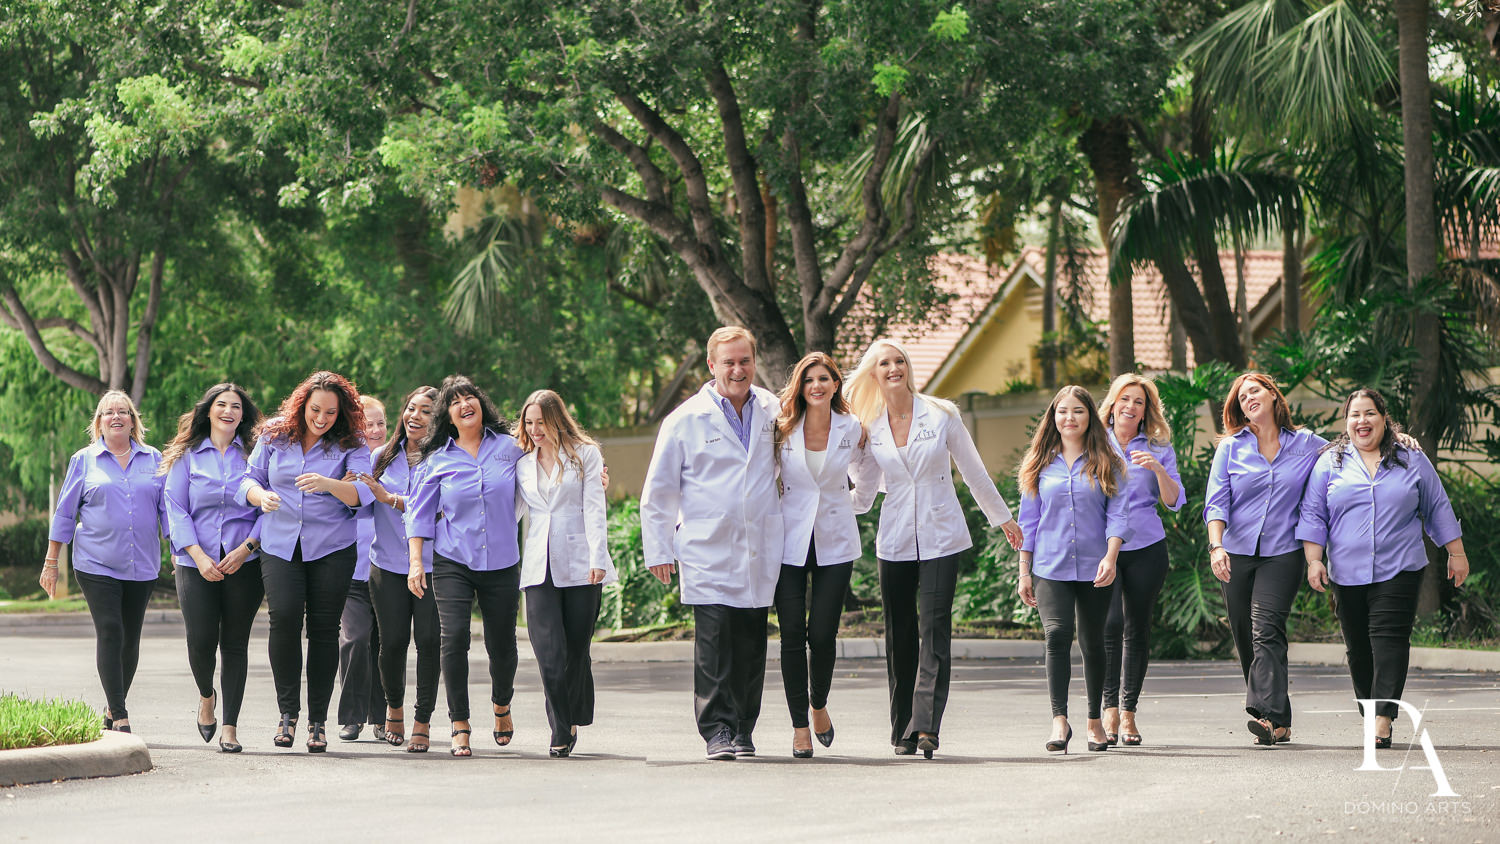 Dental Practice Corporate Photography in Fort Lauderdale by Domino Arts Photography